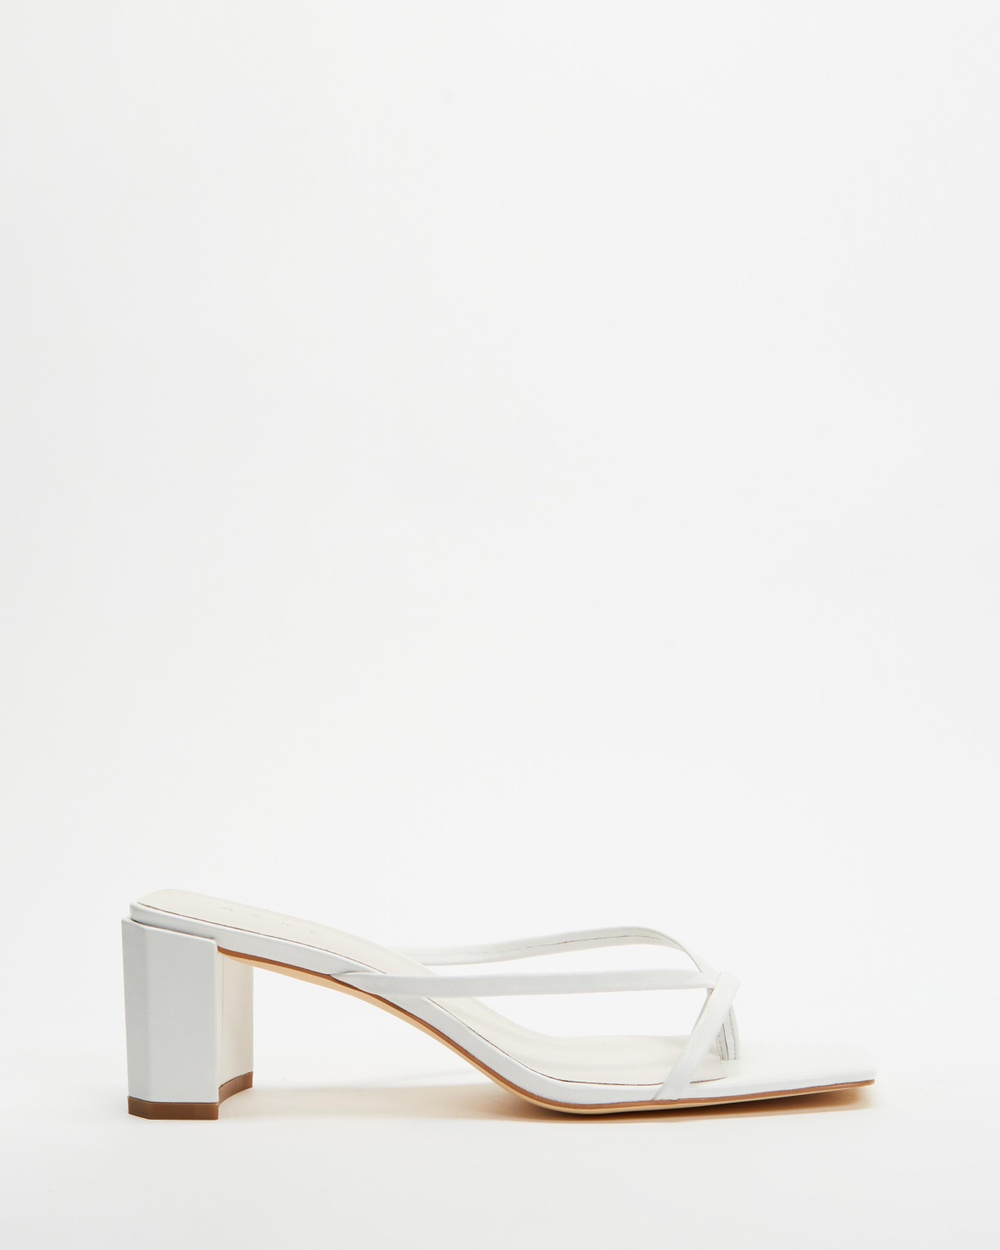 AERE Strappy Leather Block Heel Thongs Sandals White Leather